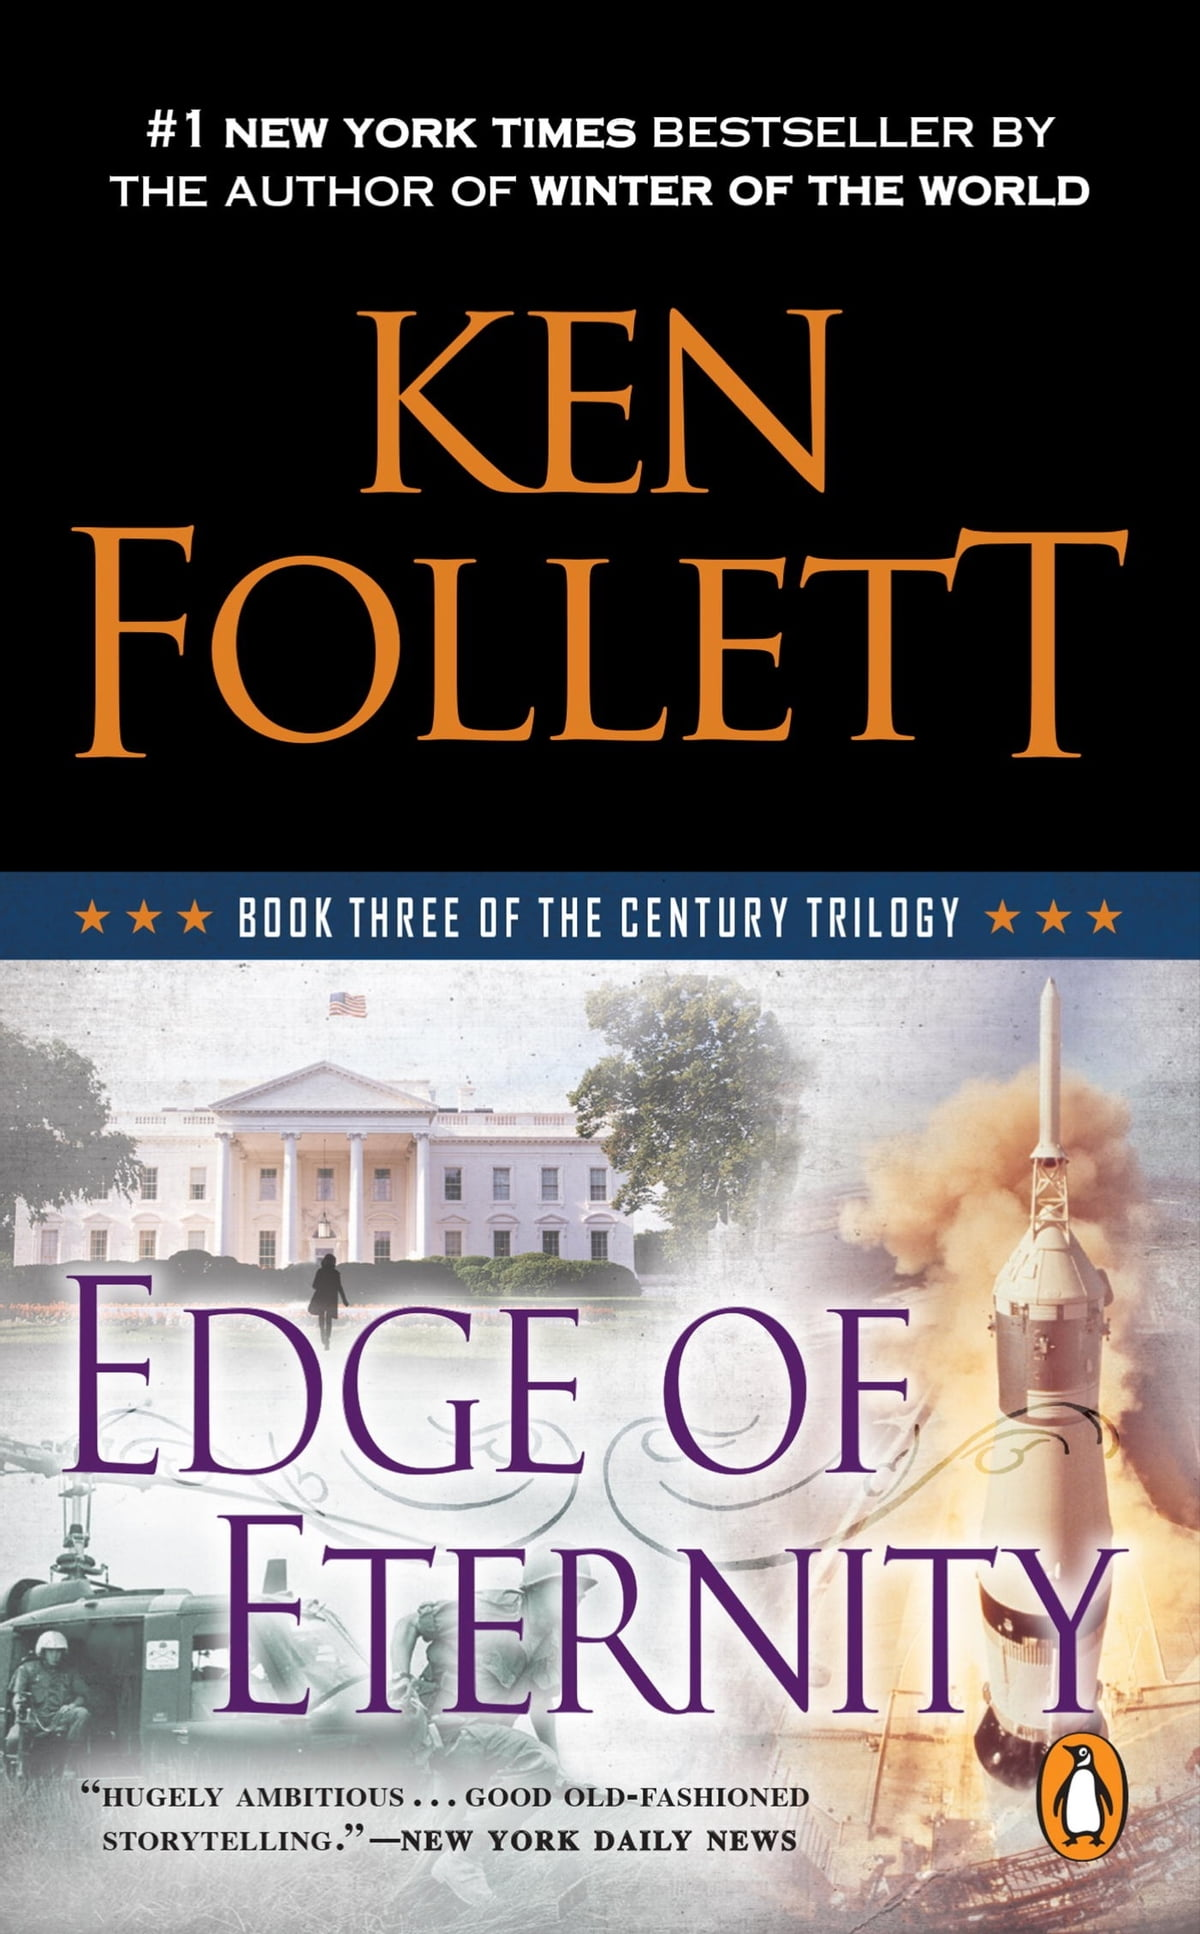 Fall of giants ebook by ken follett 9781101543559 rakuten kobo edge of eternity book three of the century trilogy ebook by ken follett fandeluxe Document